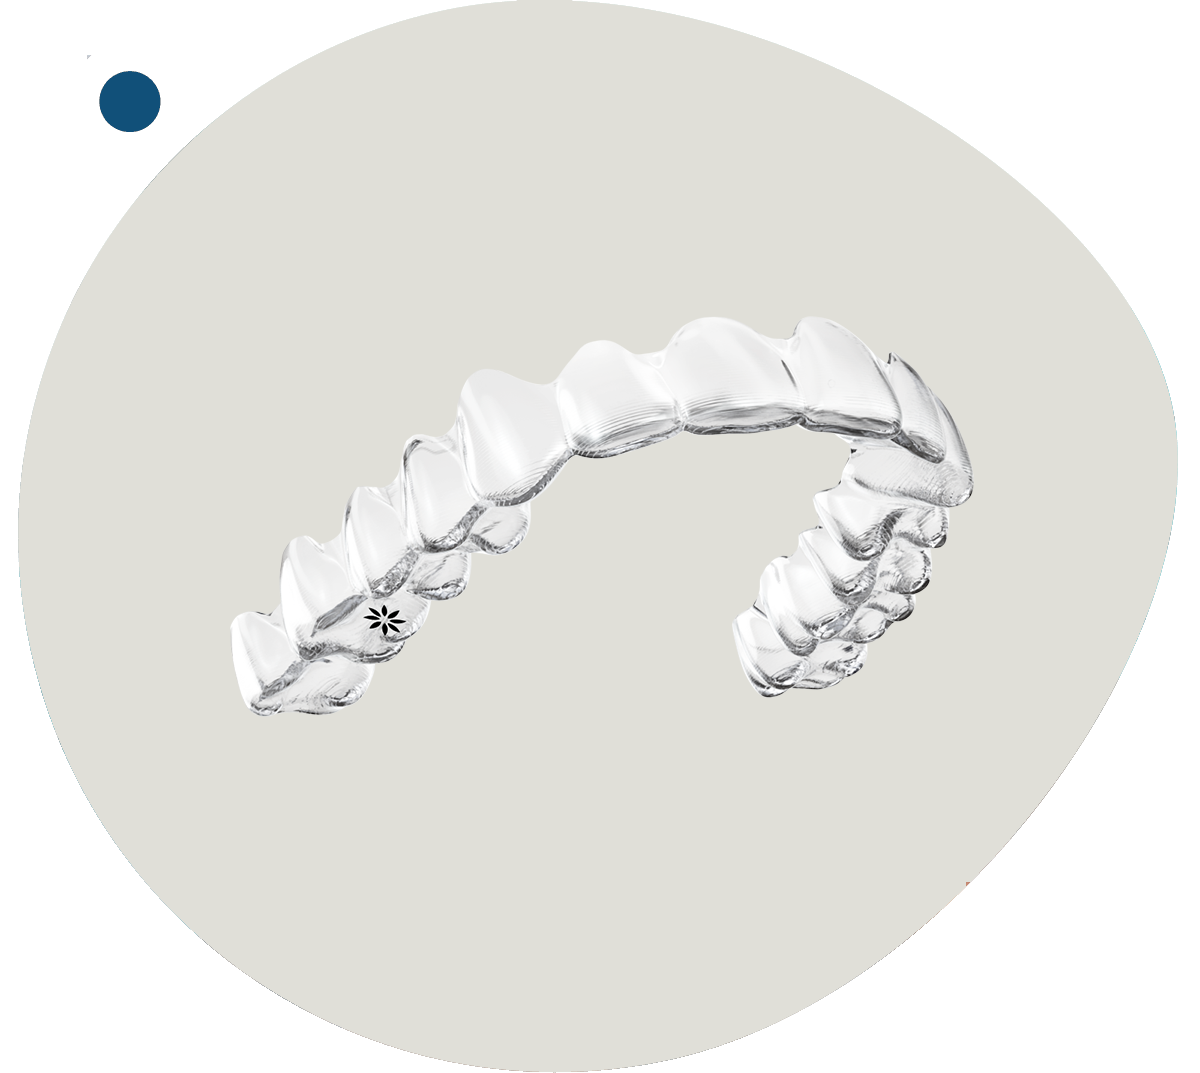 https://www.kfo-duebendorf.ch/wp-content/uploads/2020/11/invisalign.png